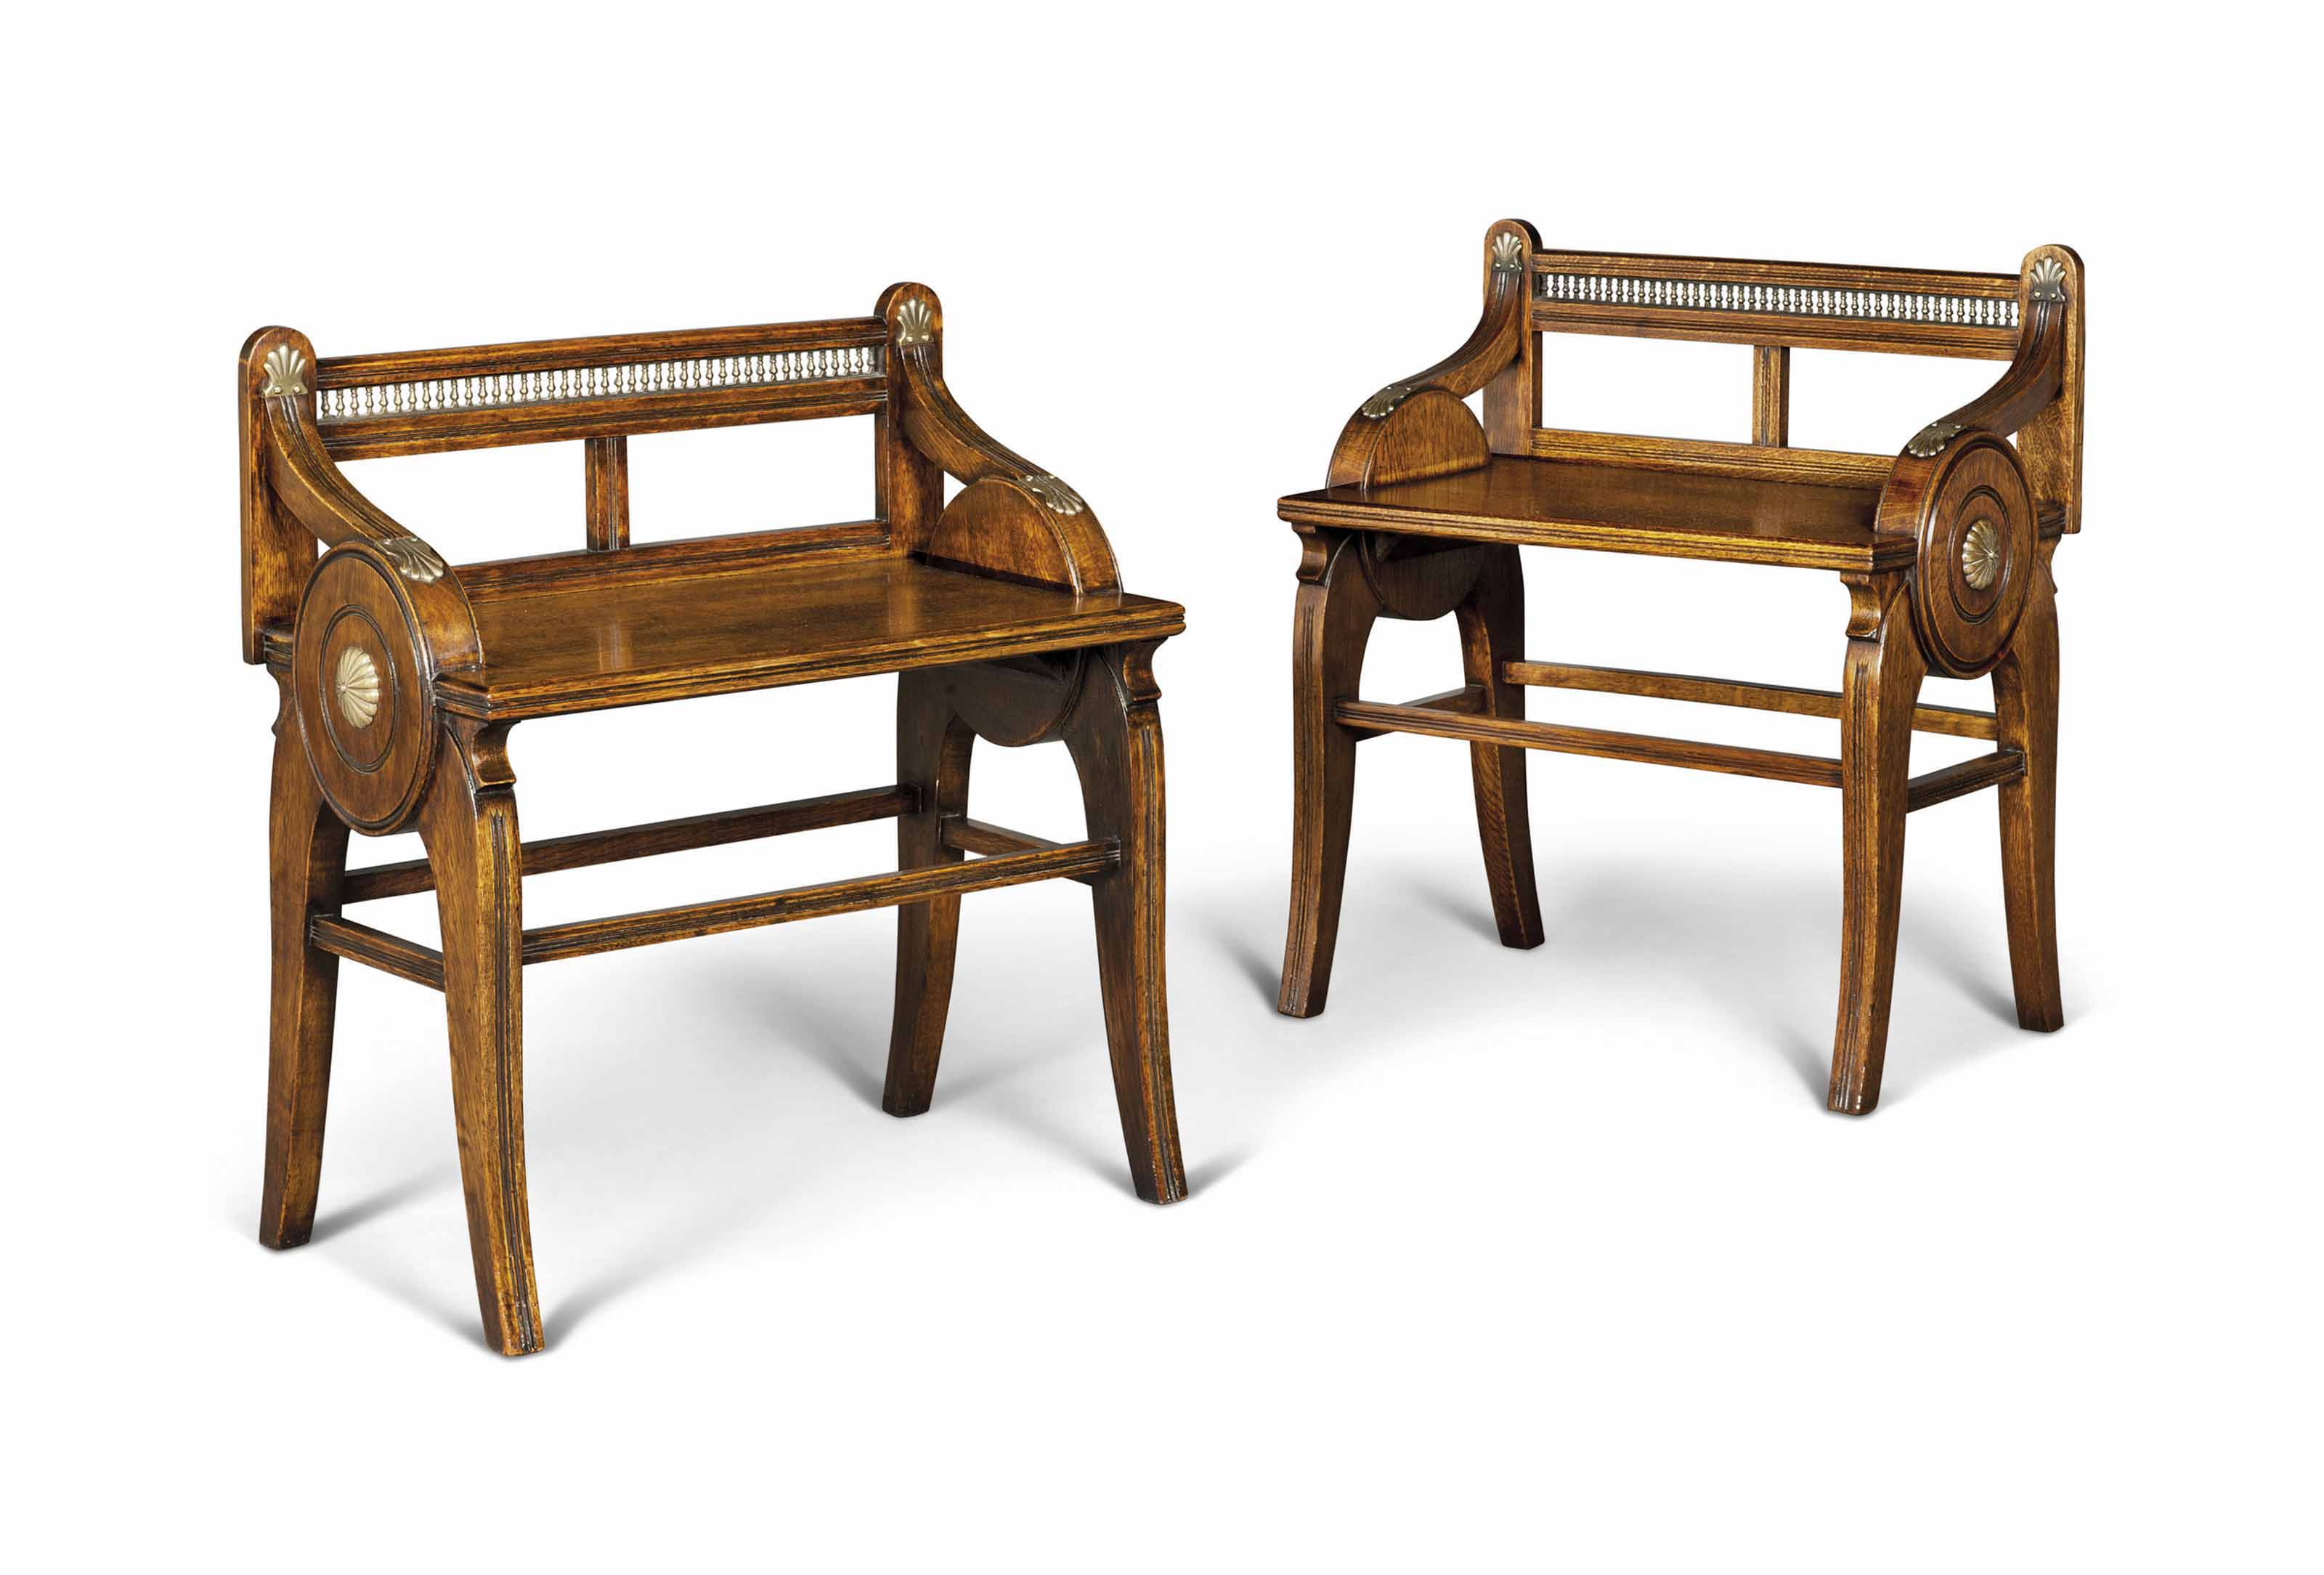 A PAIR OF VICTORIAN BRASS-MOUNTED OAK HALL BENCHES